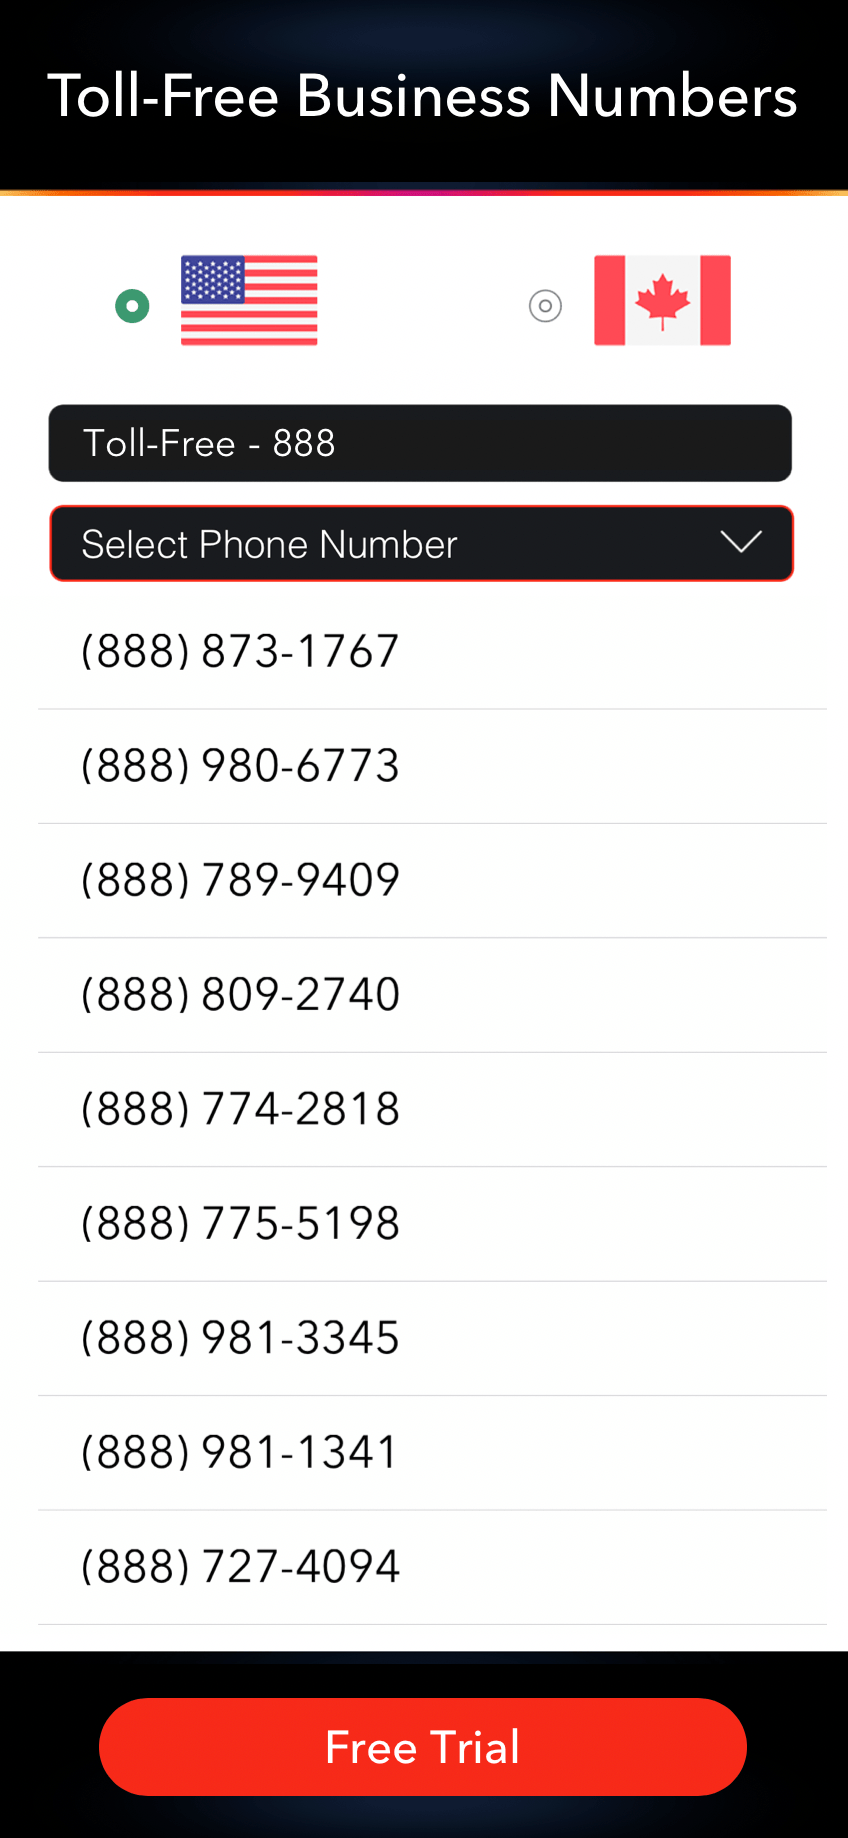 LinkedPhone Mobile App Screenshot of Select Toll-Free Business Phone Number